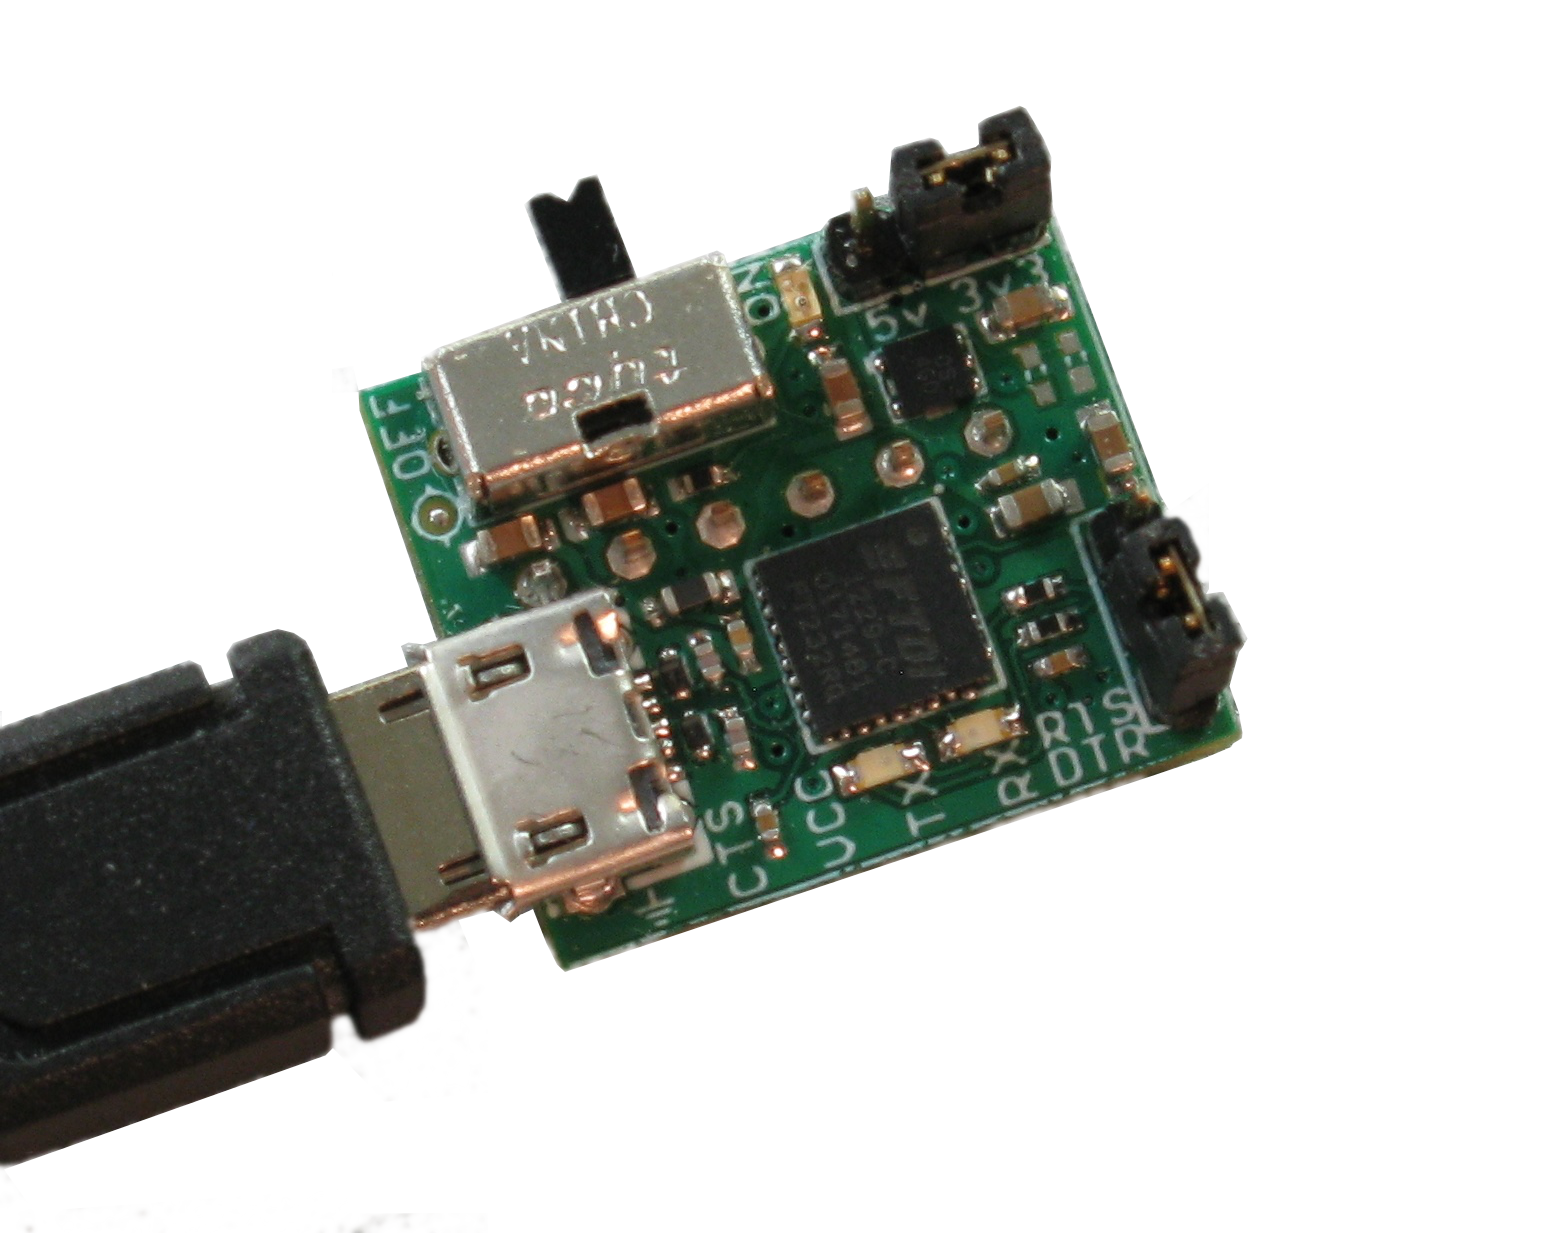 Ftdi usb to serial breakout board the visiport from